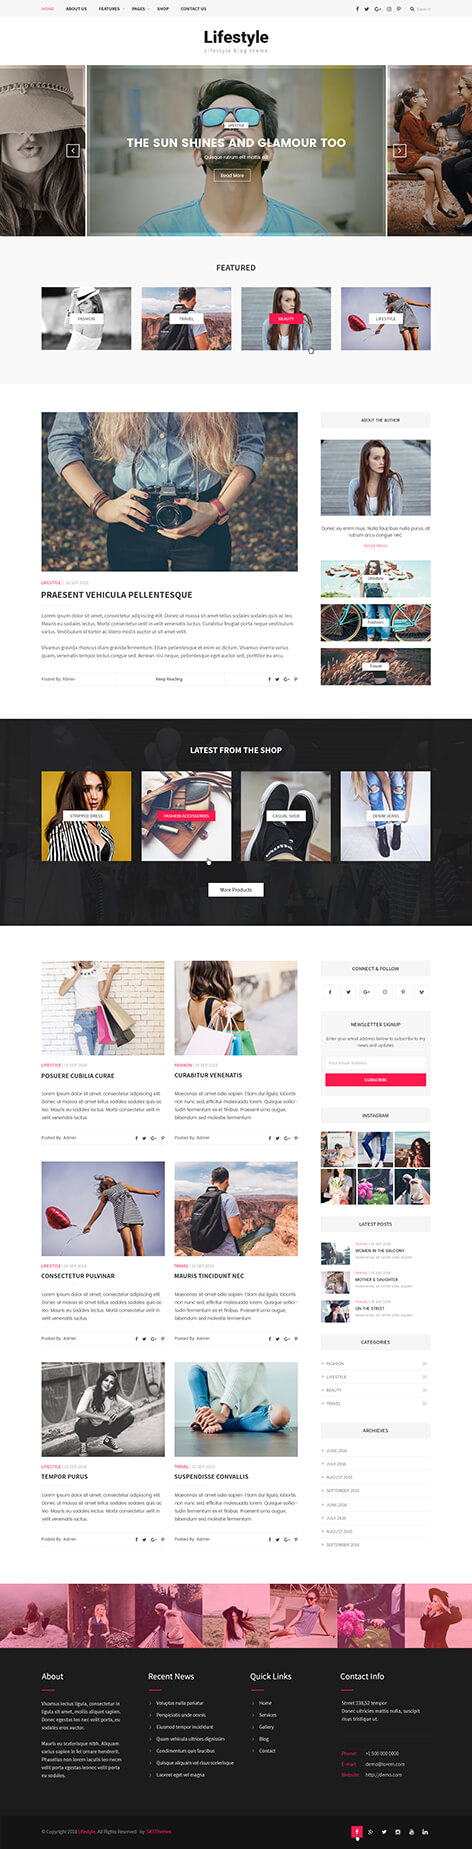 lifestyle blog WordPress theme